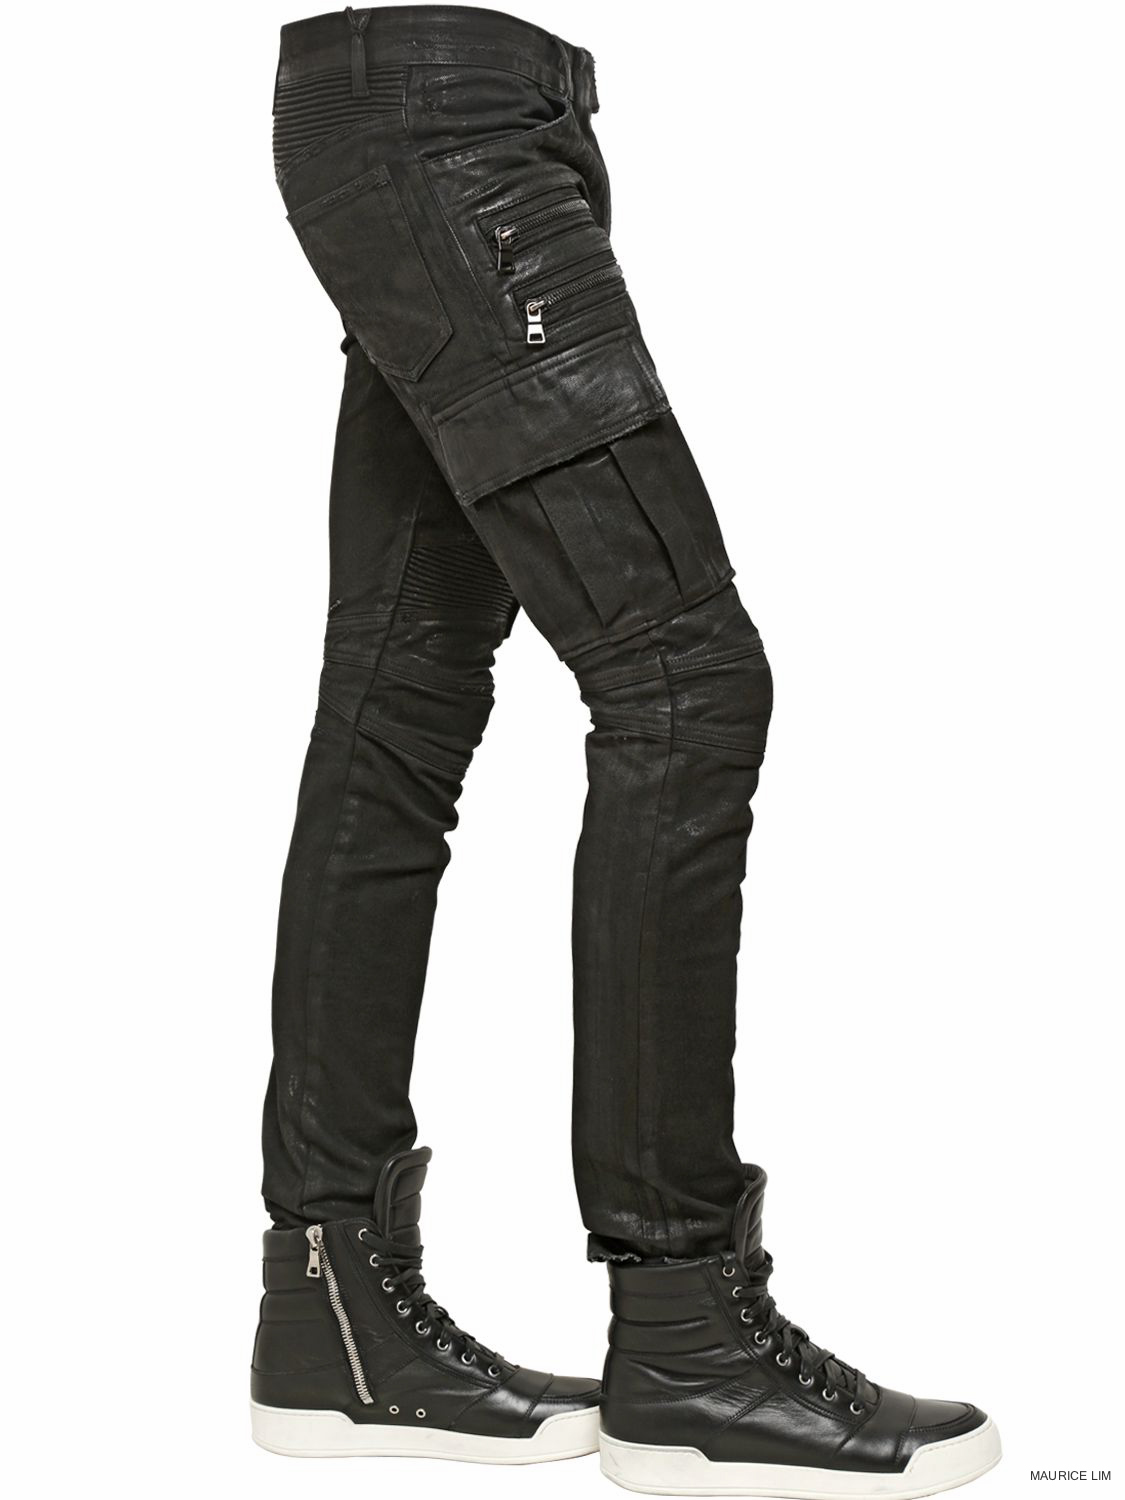 4550c502 Balmain Fall Winter 2014 Biker Jeans and Trousers Size Guide – Second  Kulture